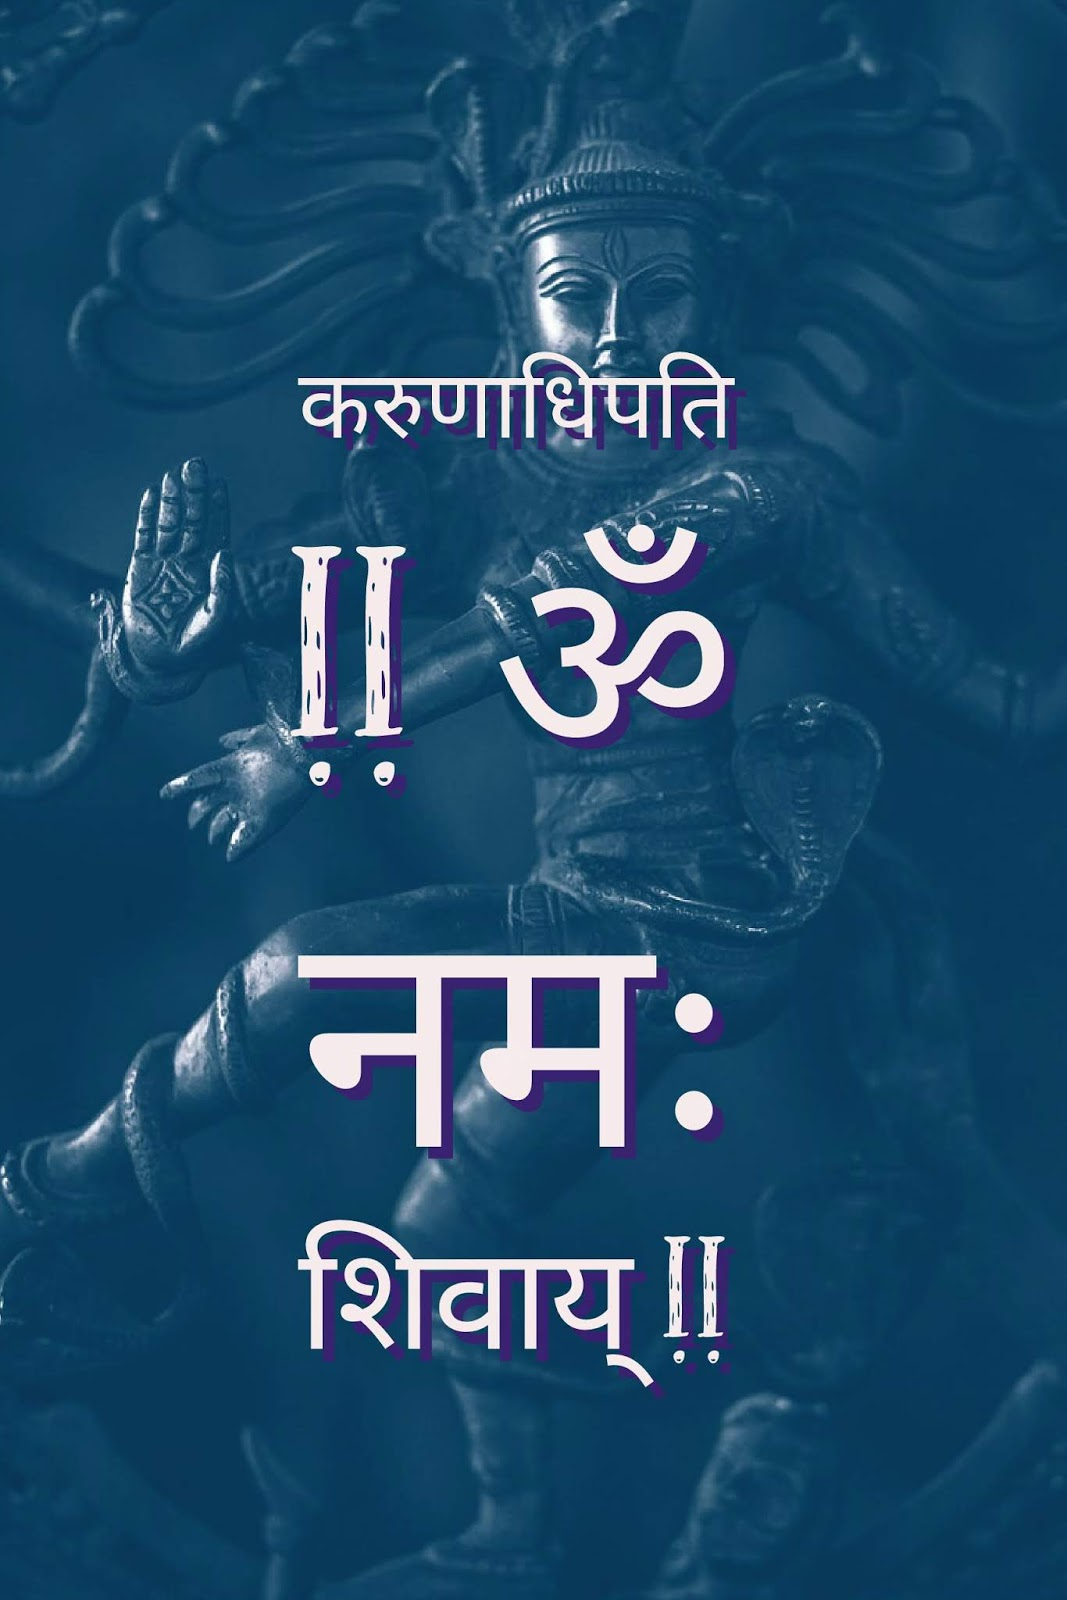 50+ Great Images Of Lord Shiva With Quotes - Allquotesideas